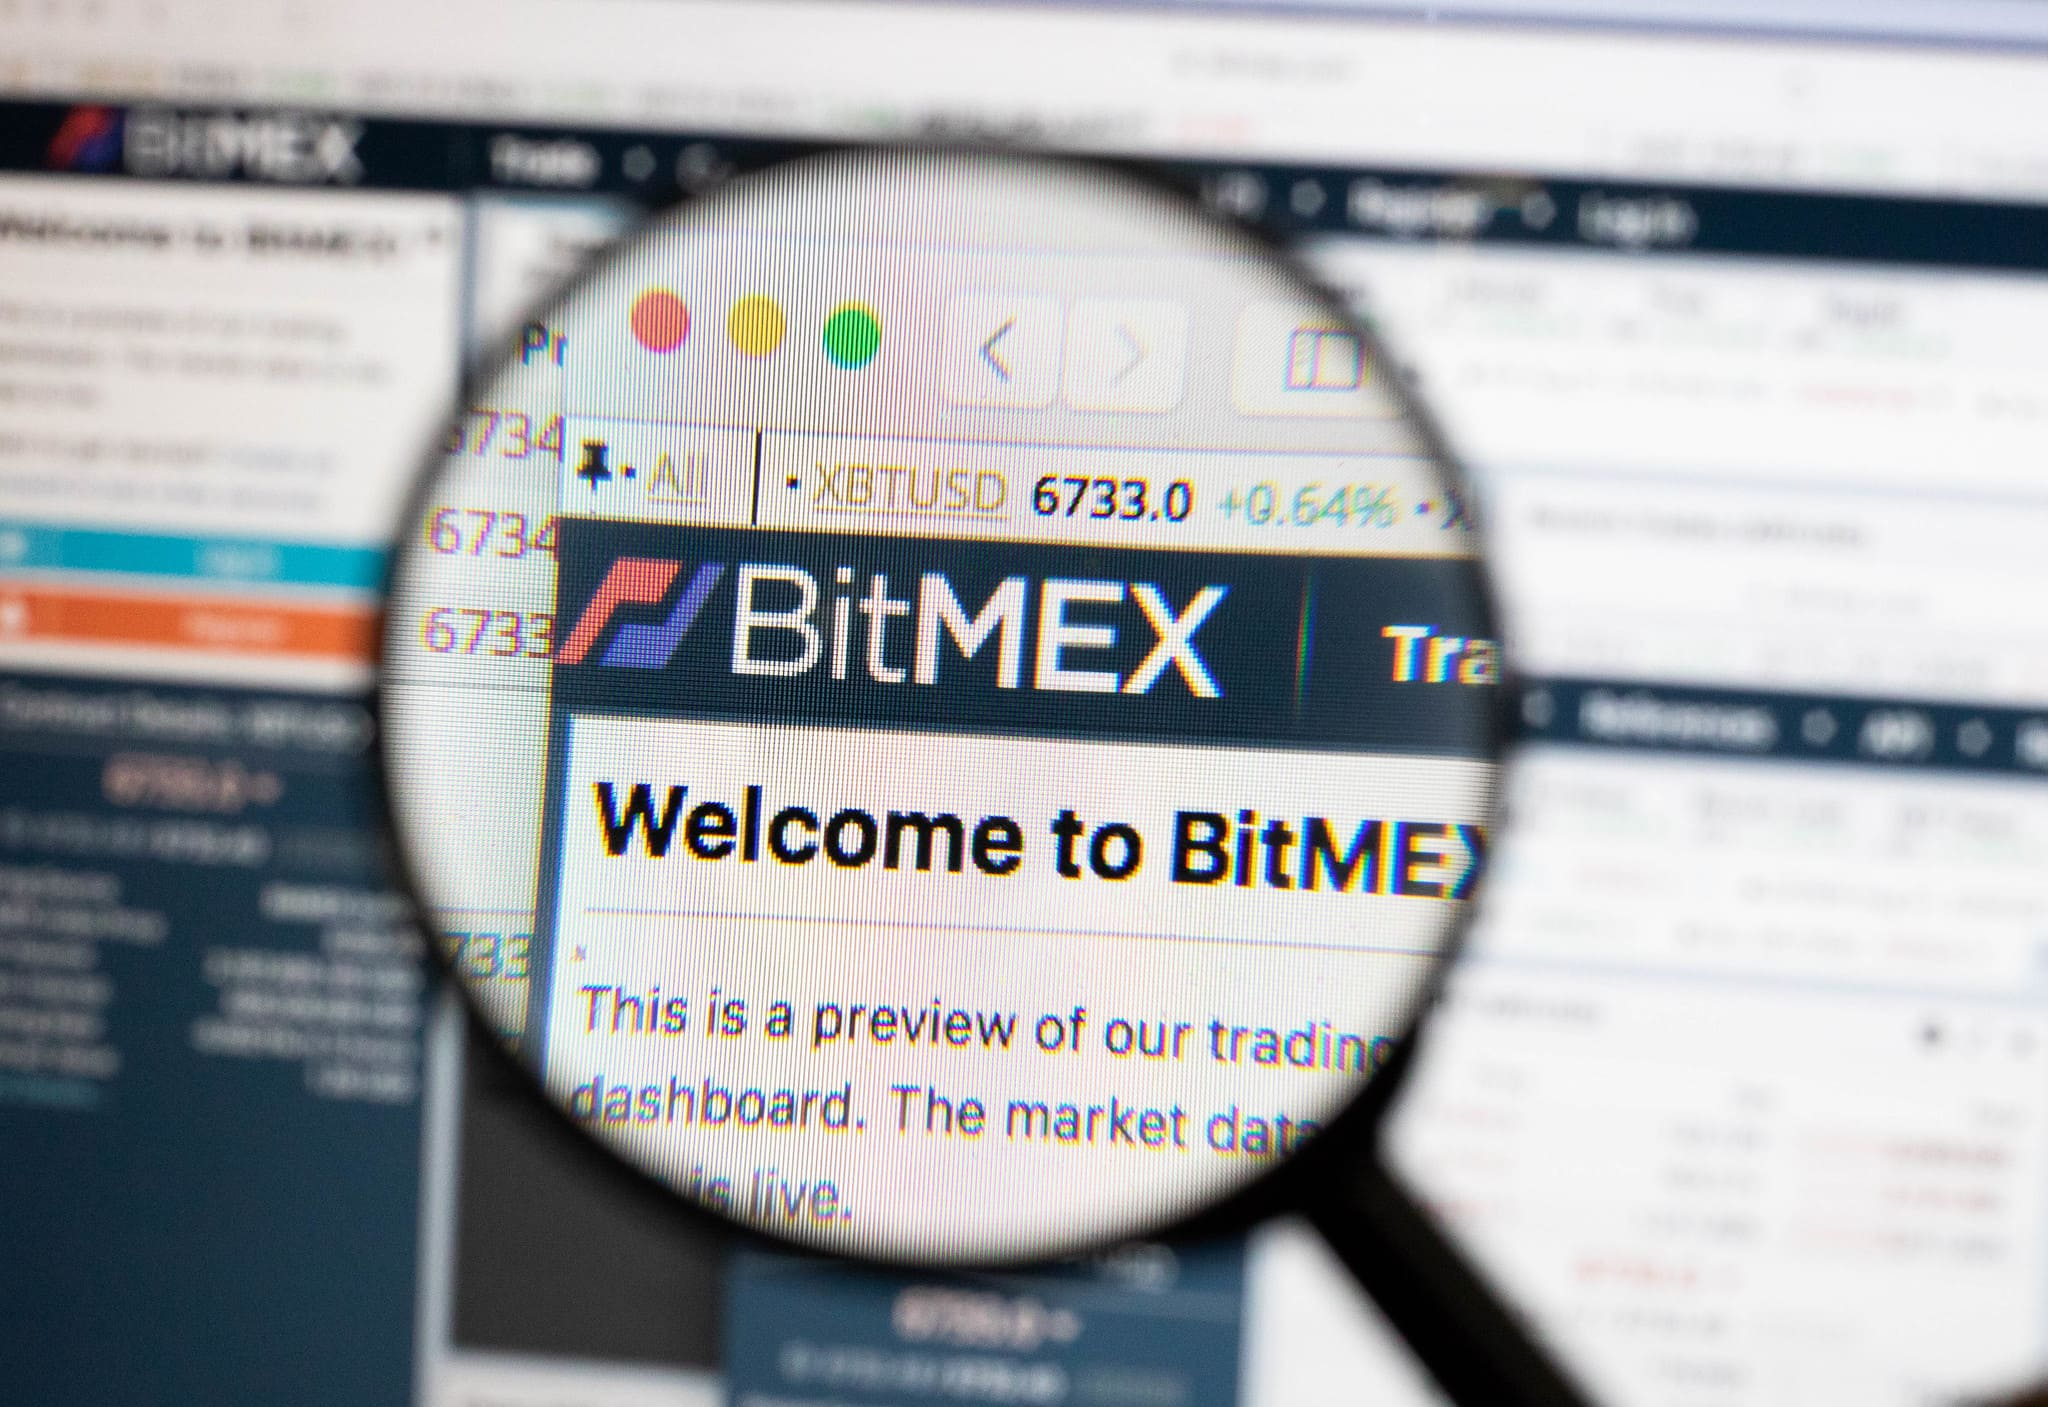 BitMEX Joins Covid-19 Relief Efforts With the $2.5M Fund